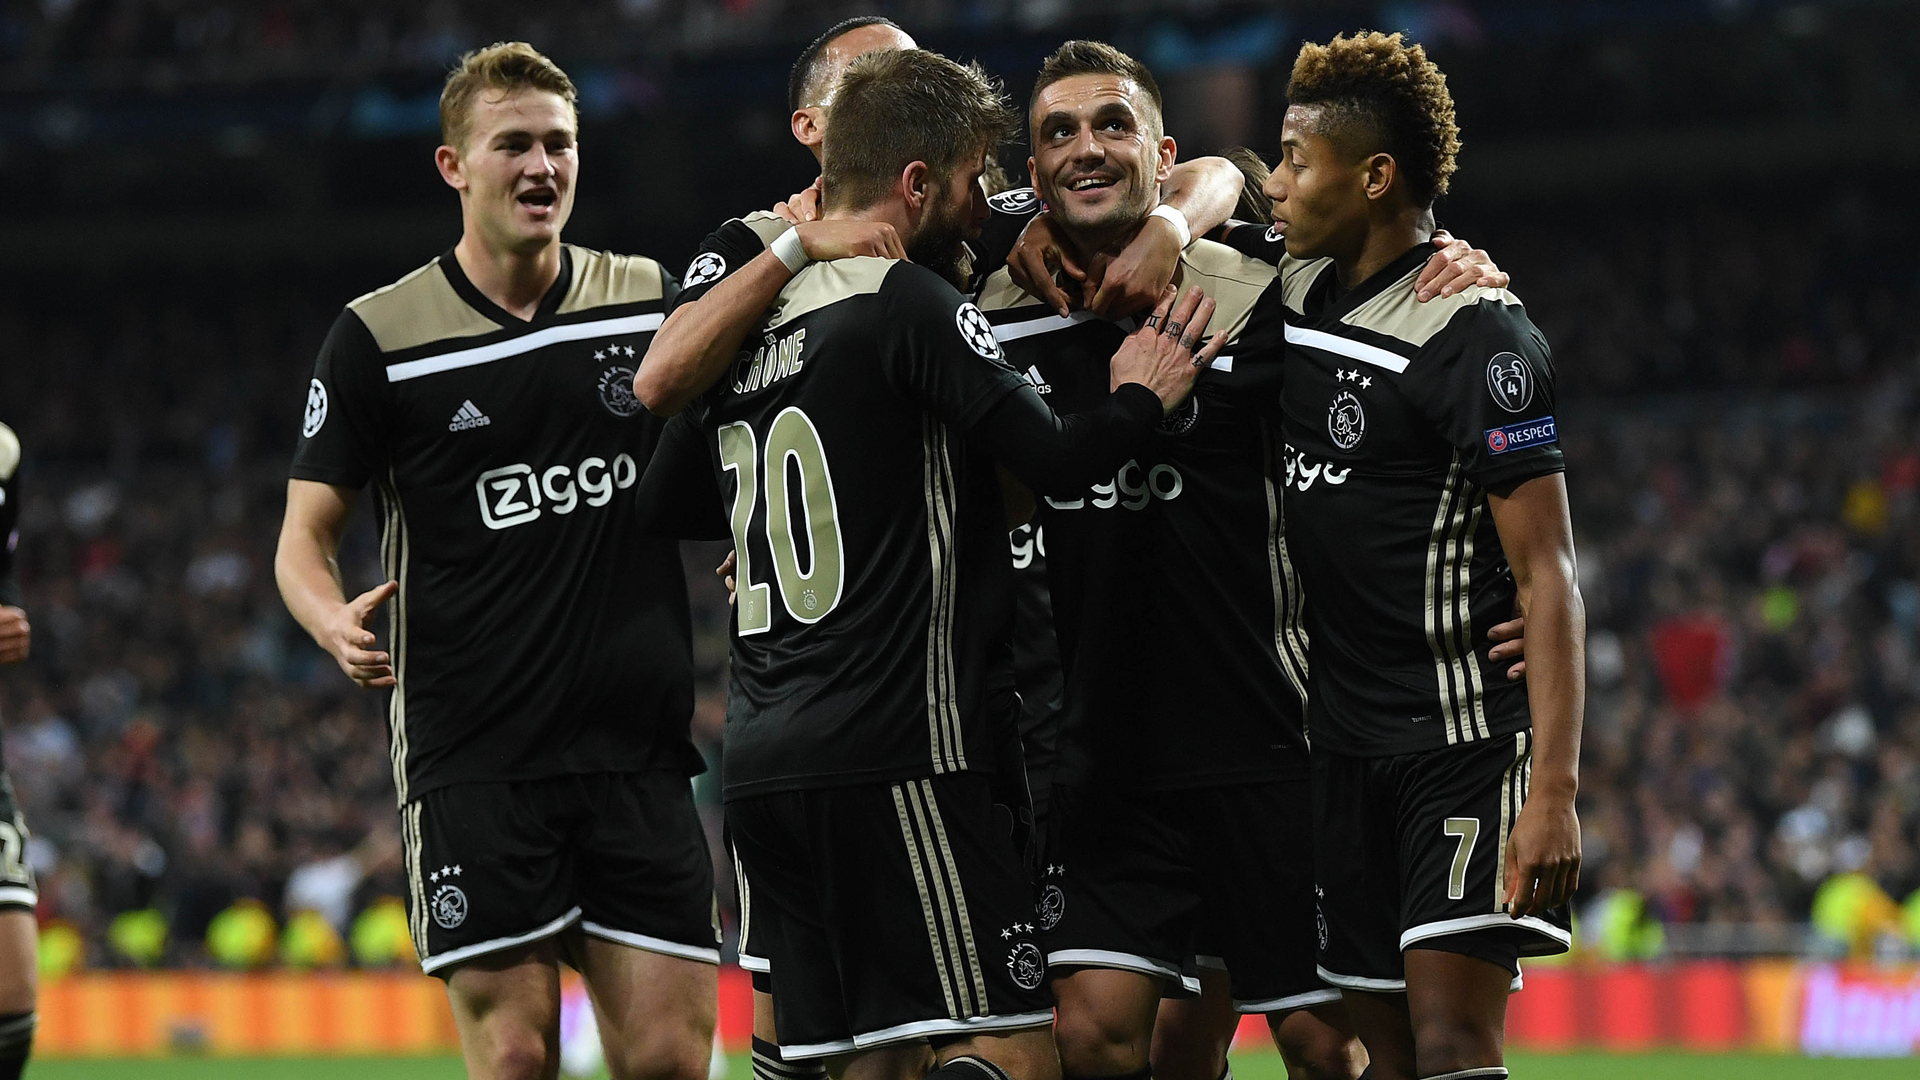 Eredivisie fixtures move boosts Ajax's Champions League bid